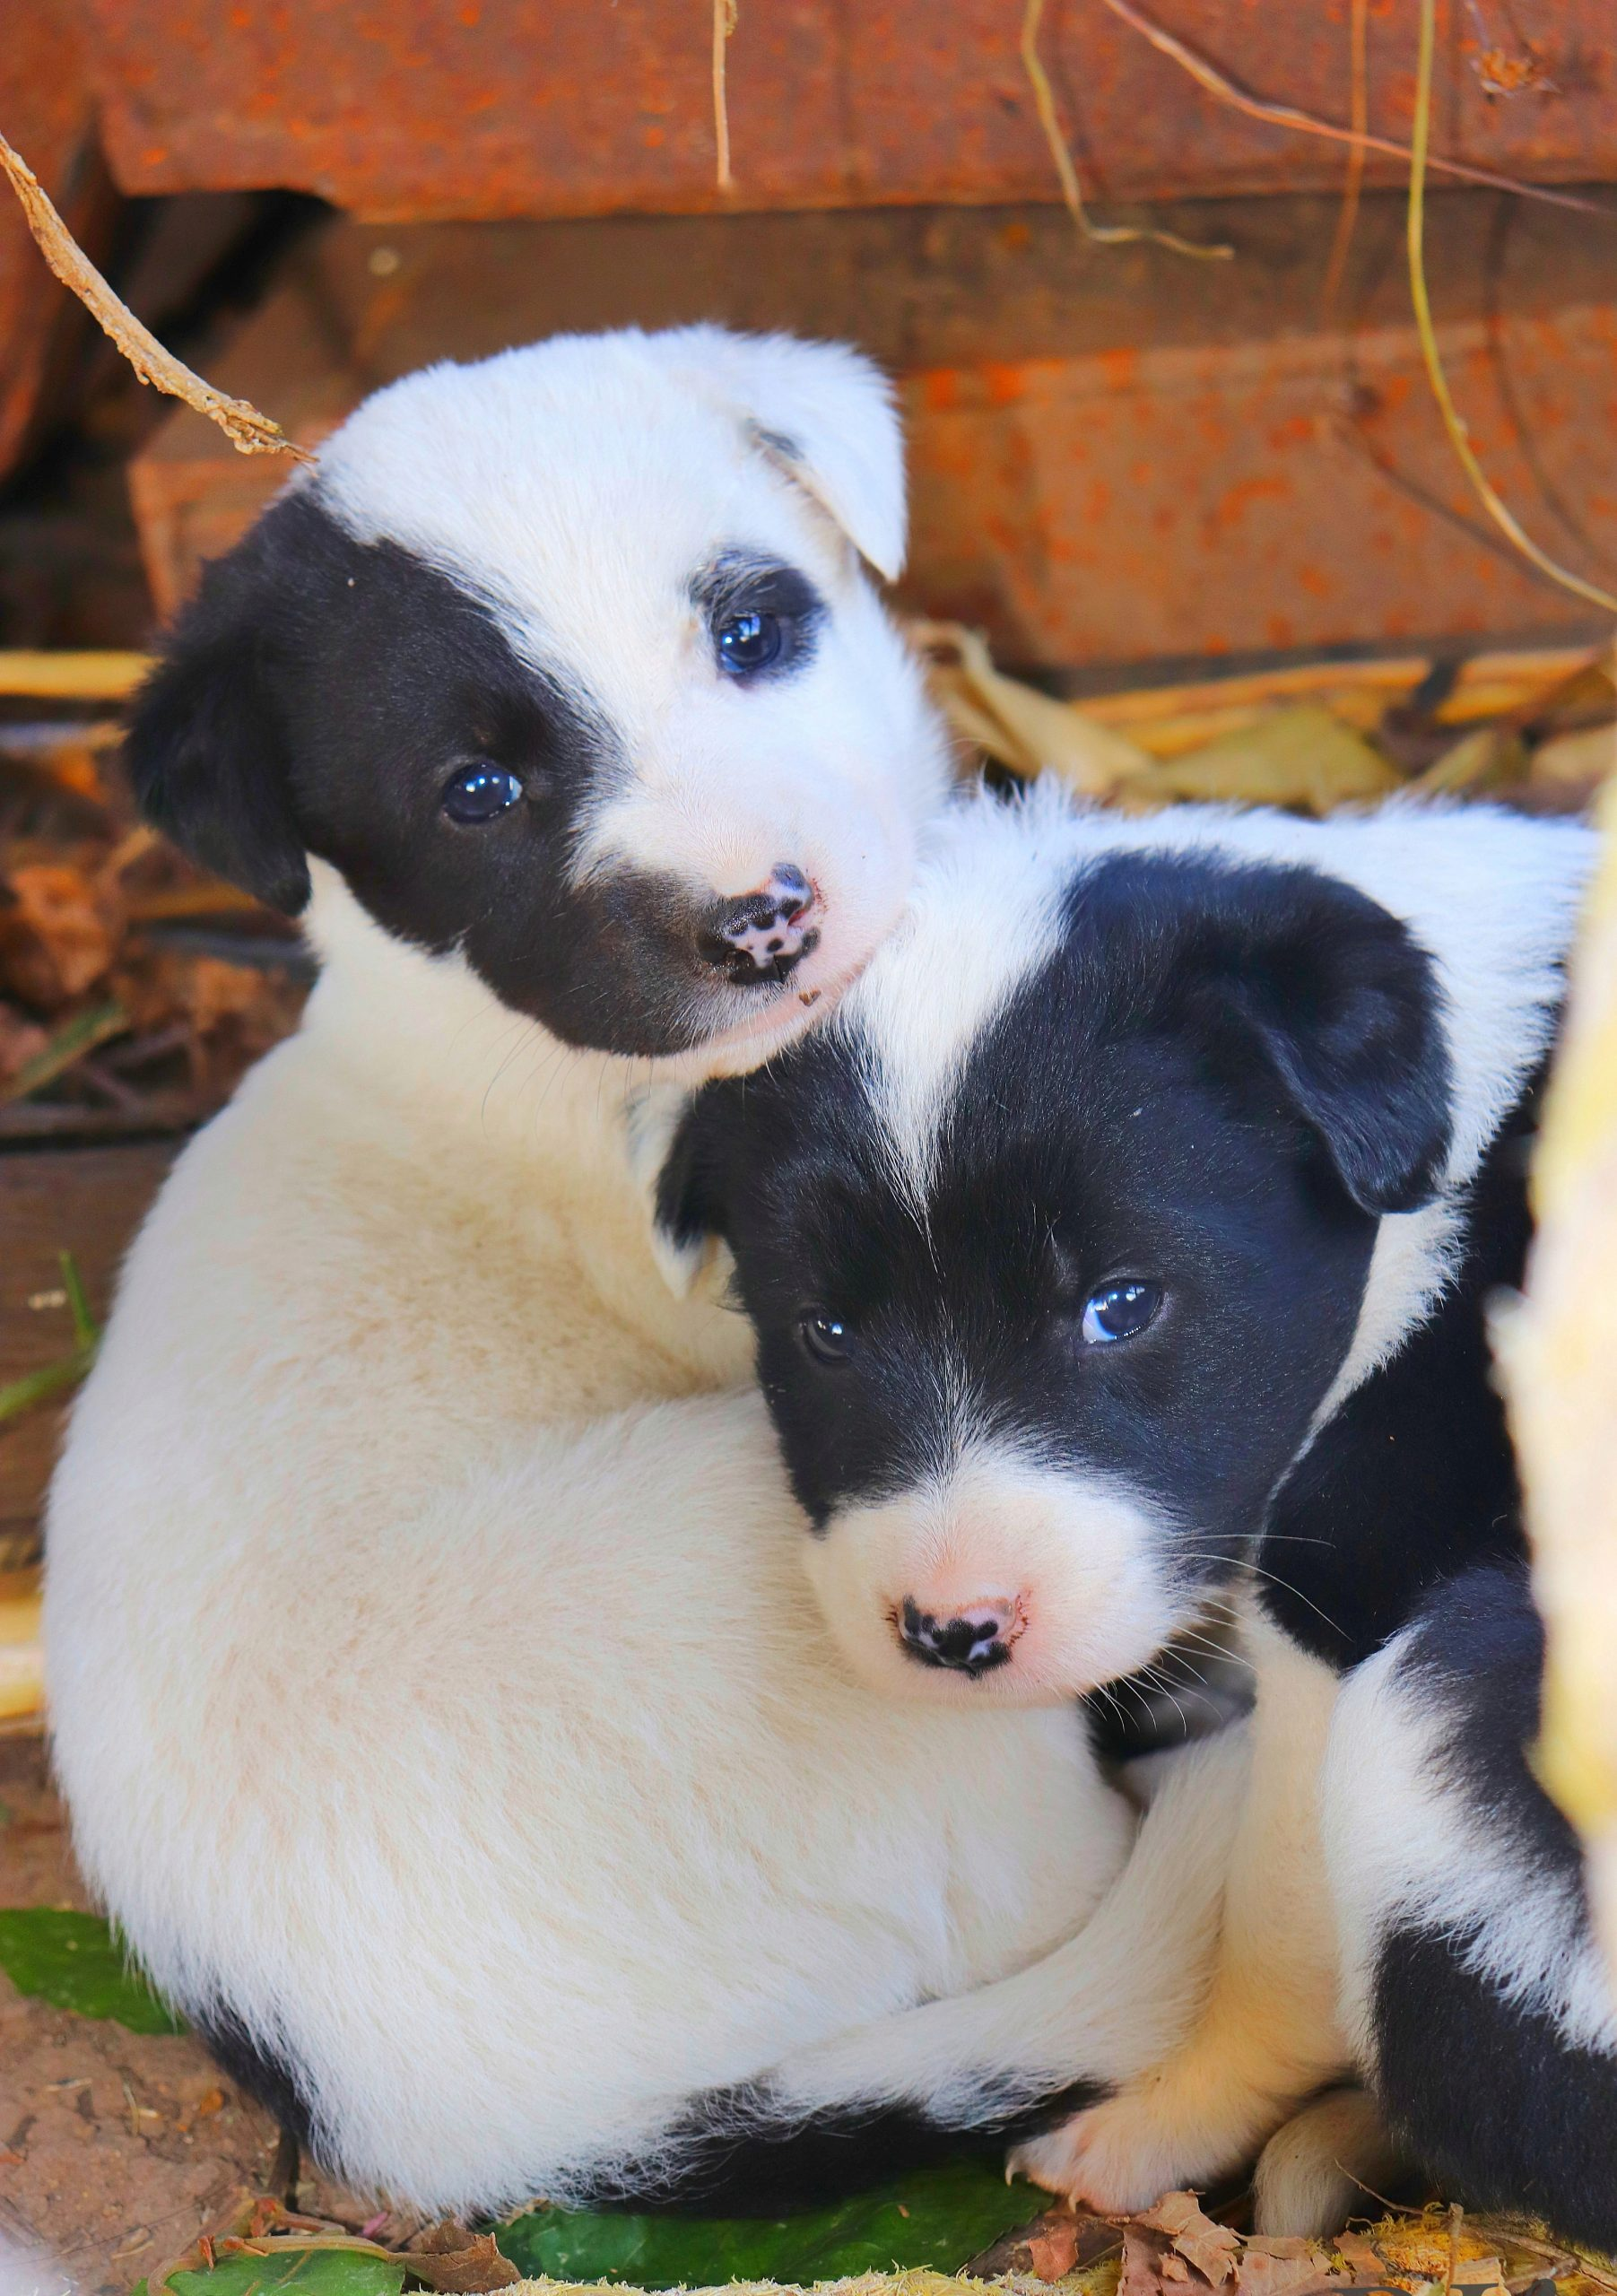 puppies with patches